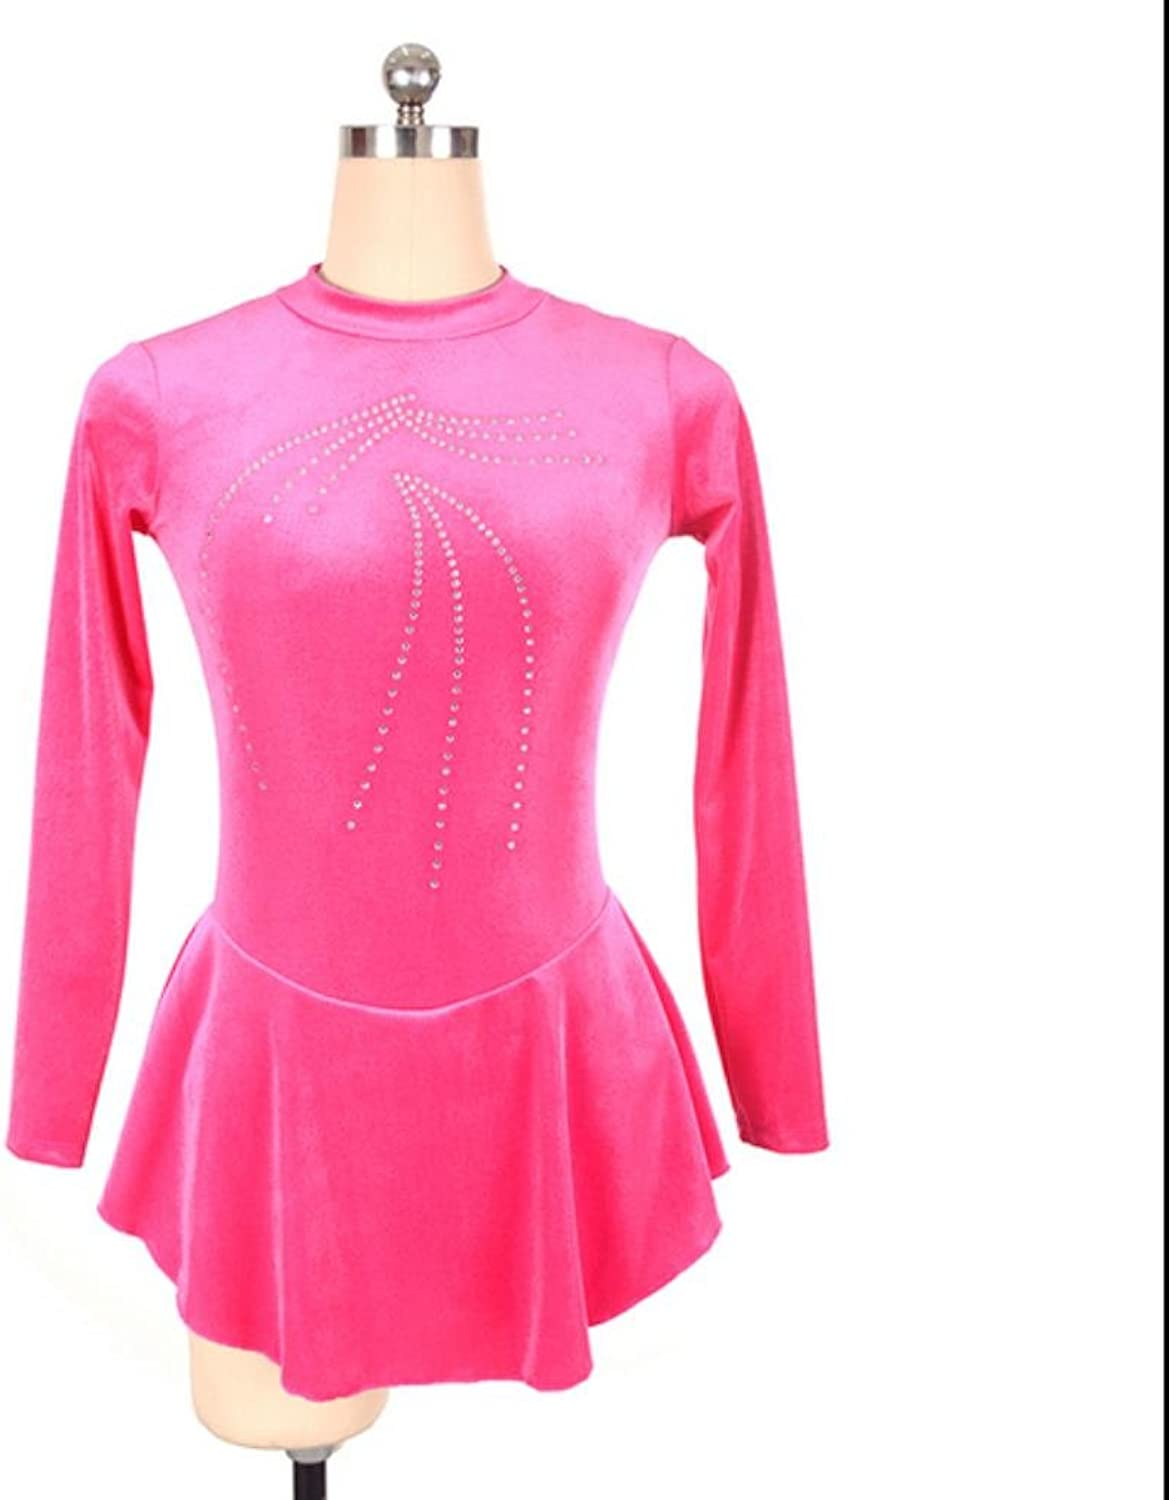 Heart&M Figure Skating Dress Women and Girls' Ice Skating Dress Stretchy Velvet Hand Craft Rhinestone Skating Wear Long Sleeve Pink